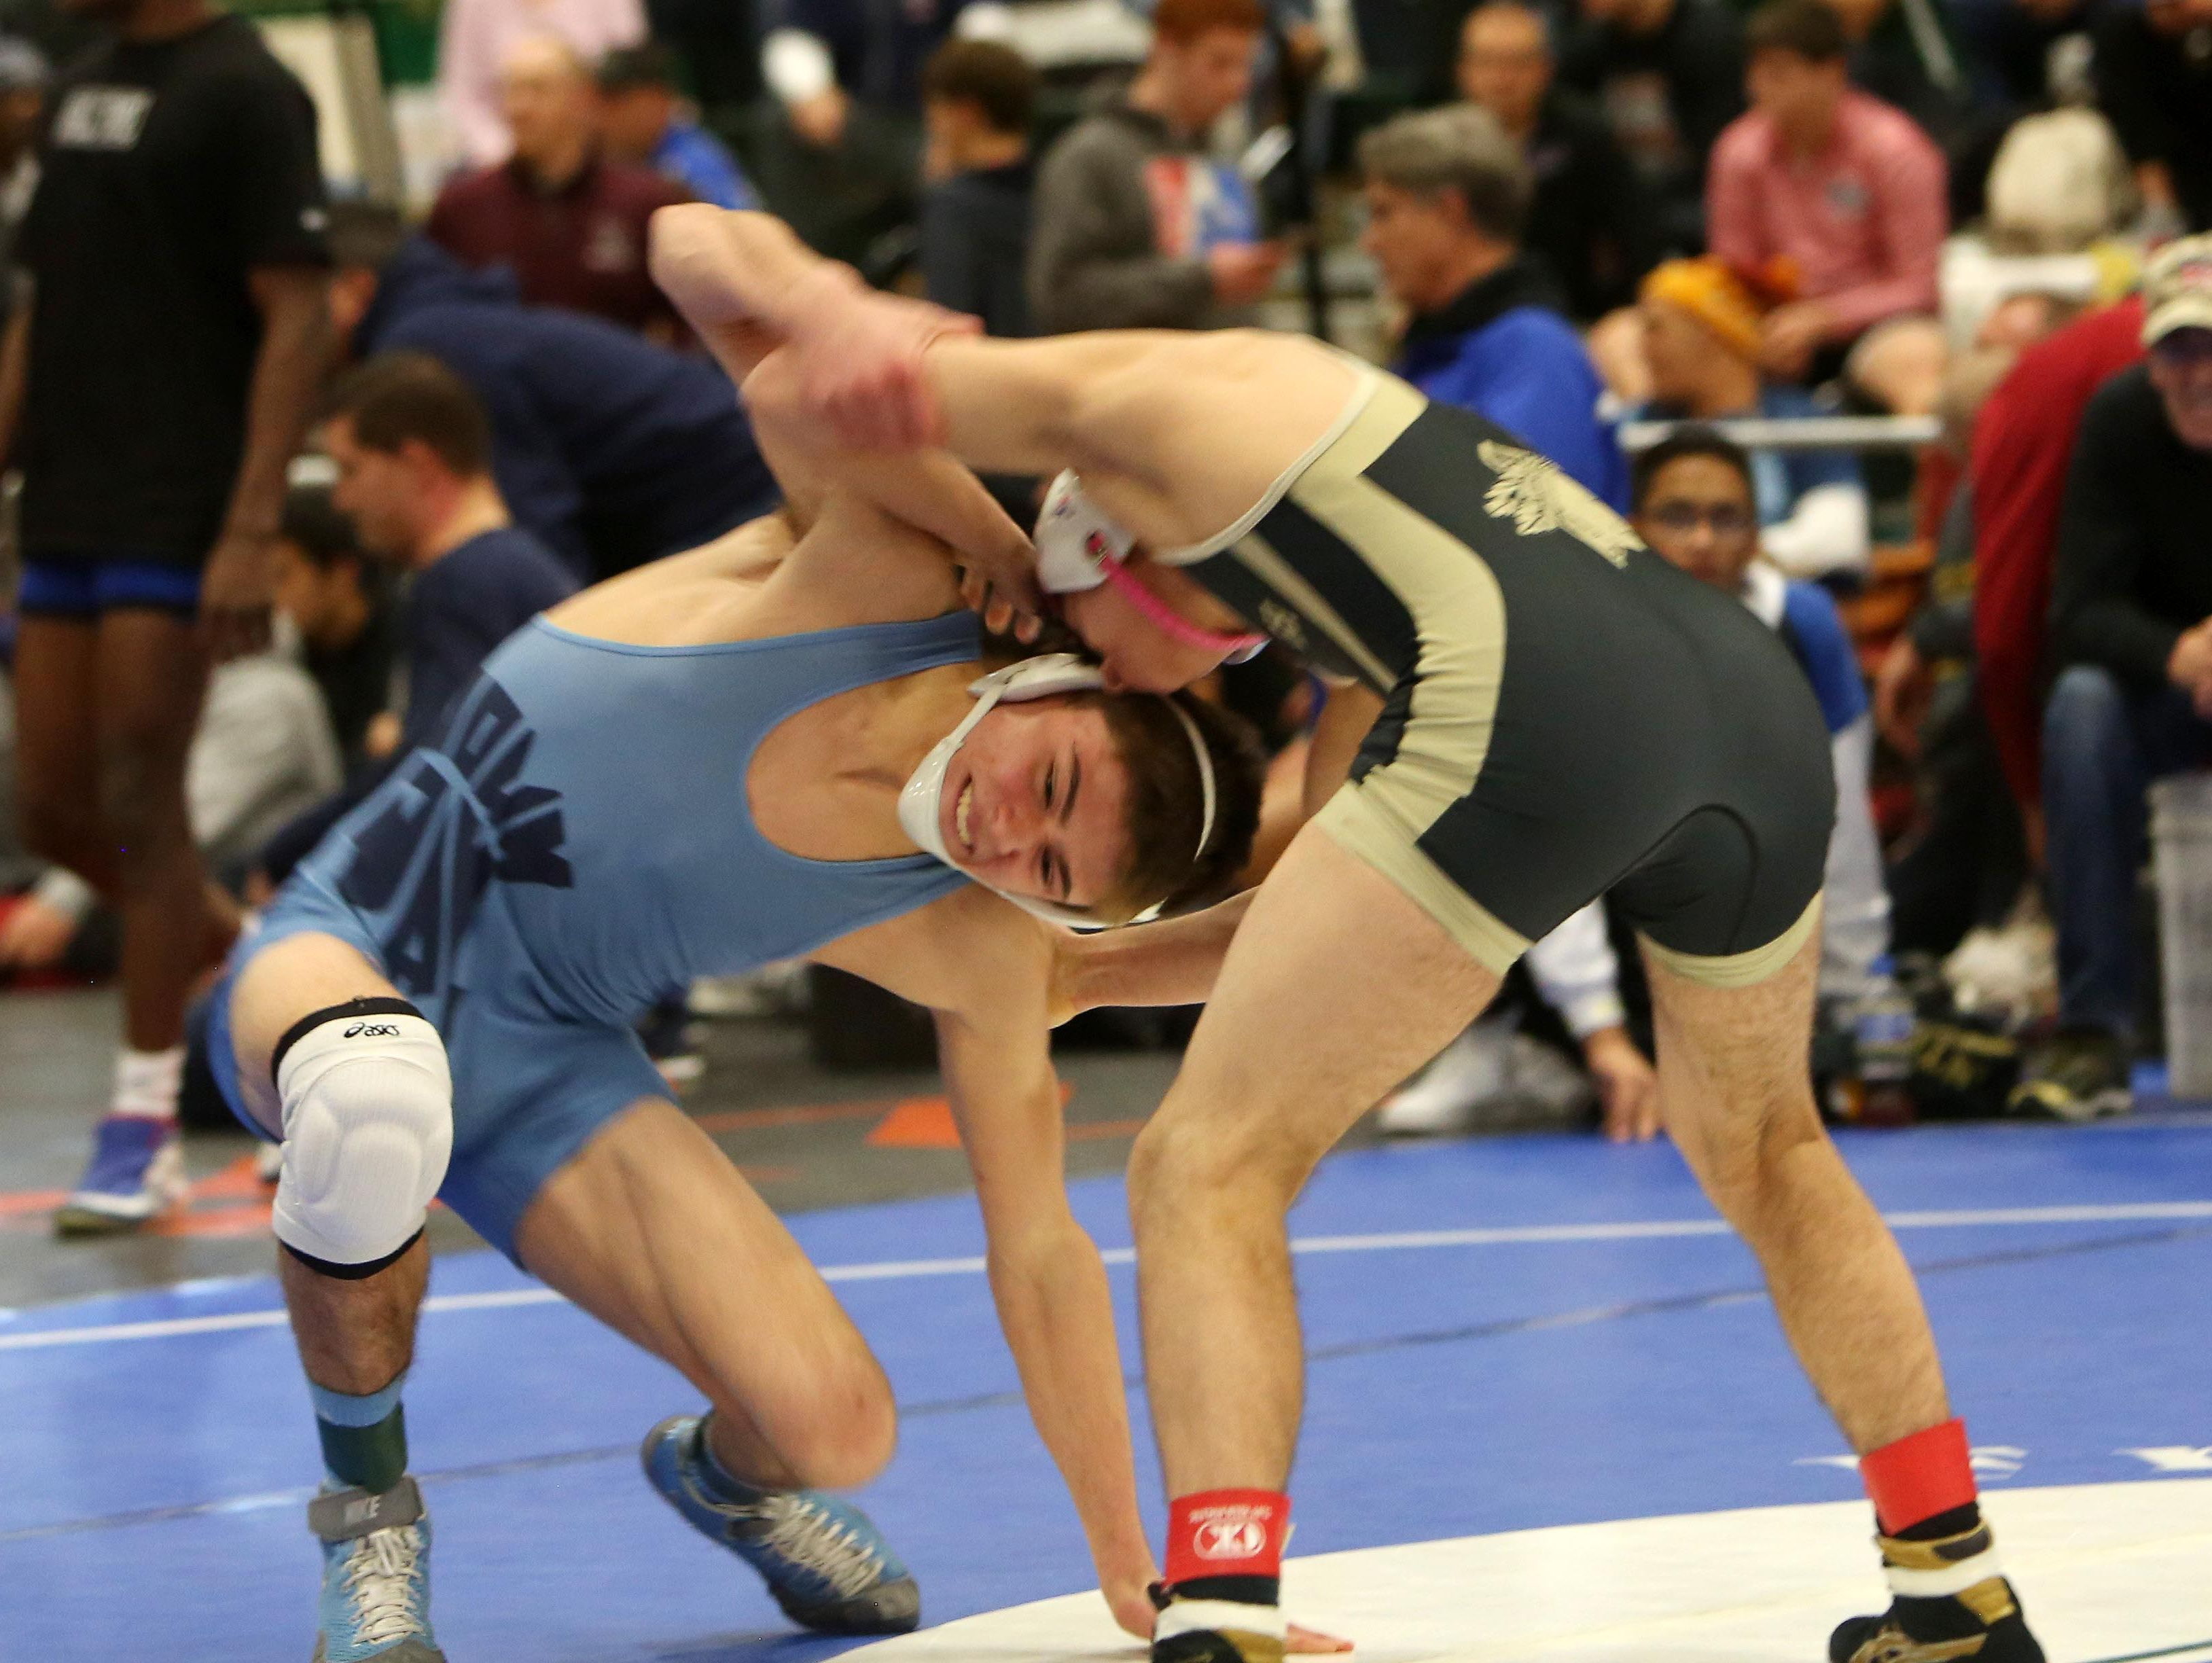 John Jay East Fishkill's Randy Earl and Wantagh's Justin Vines wrestle in the semifinals of the 126-pound weight class during the Eastern States Classic Wrestling Tournament at Sullivan Community College in Loch Sheldrake, N.Y. Jan. 14, 2017. Vines won the match, with Earl taking 5th place and also winning his 200th career win.